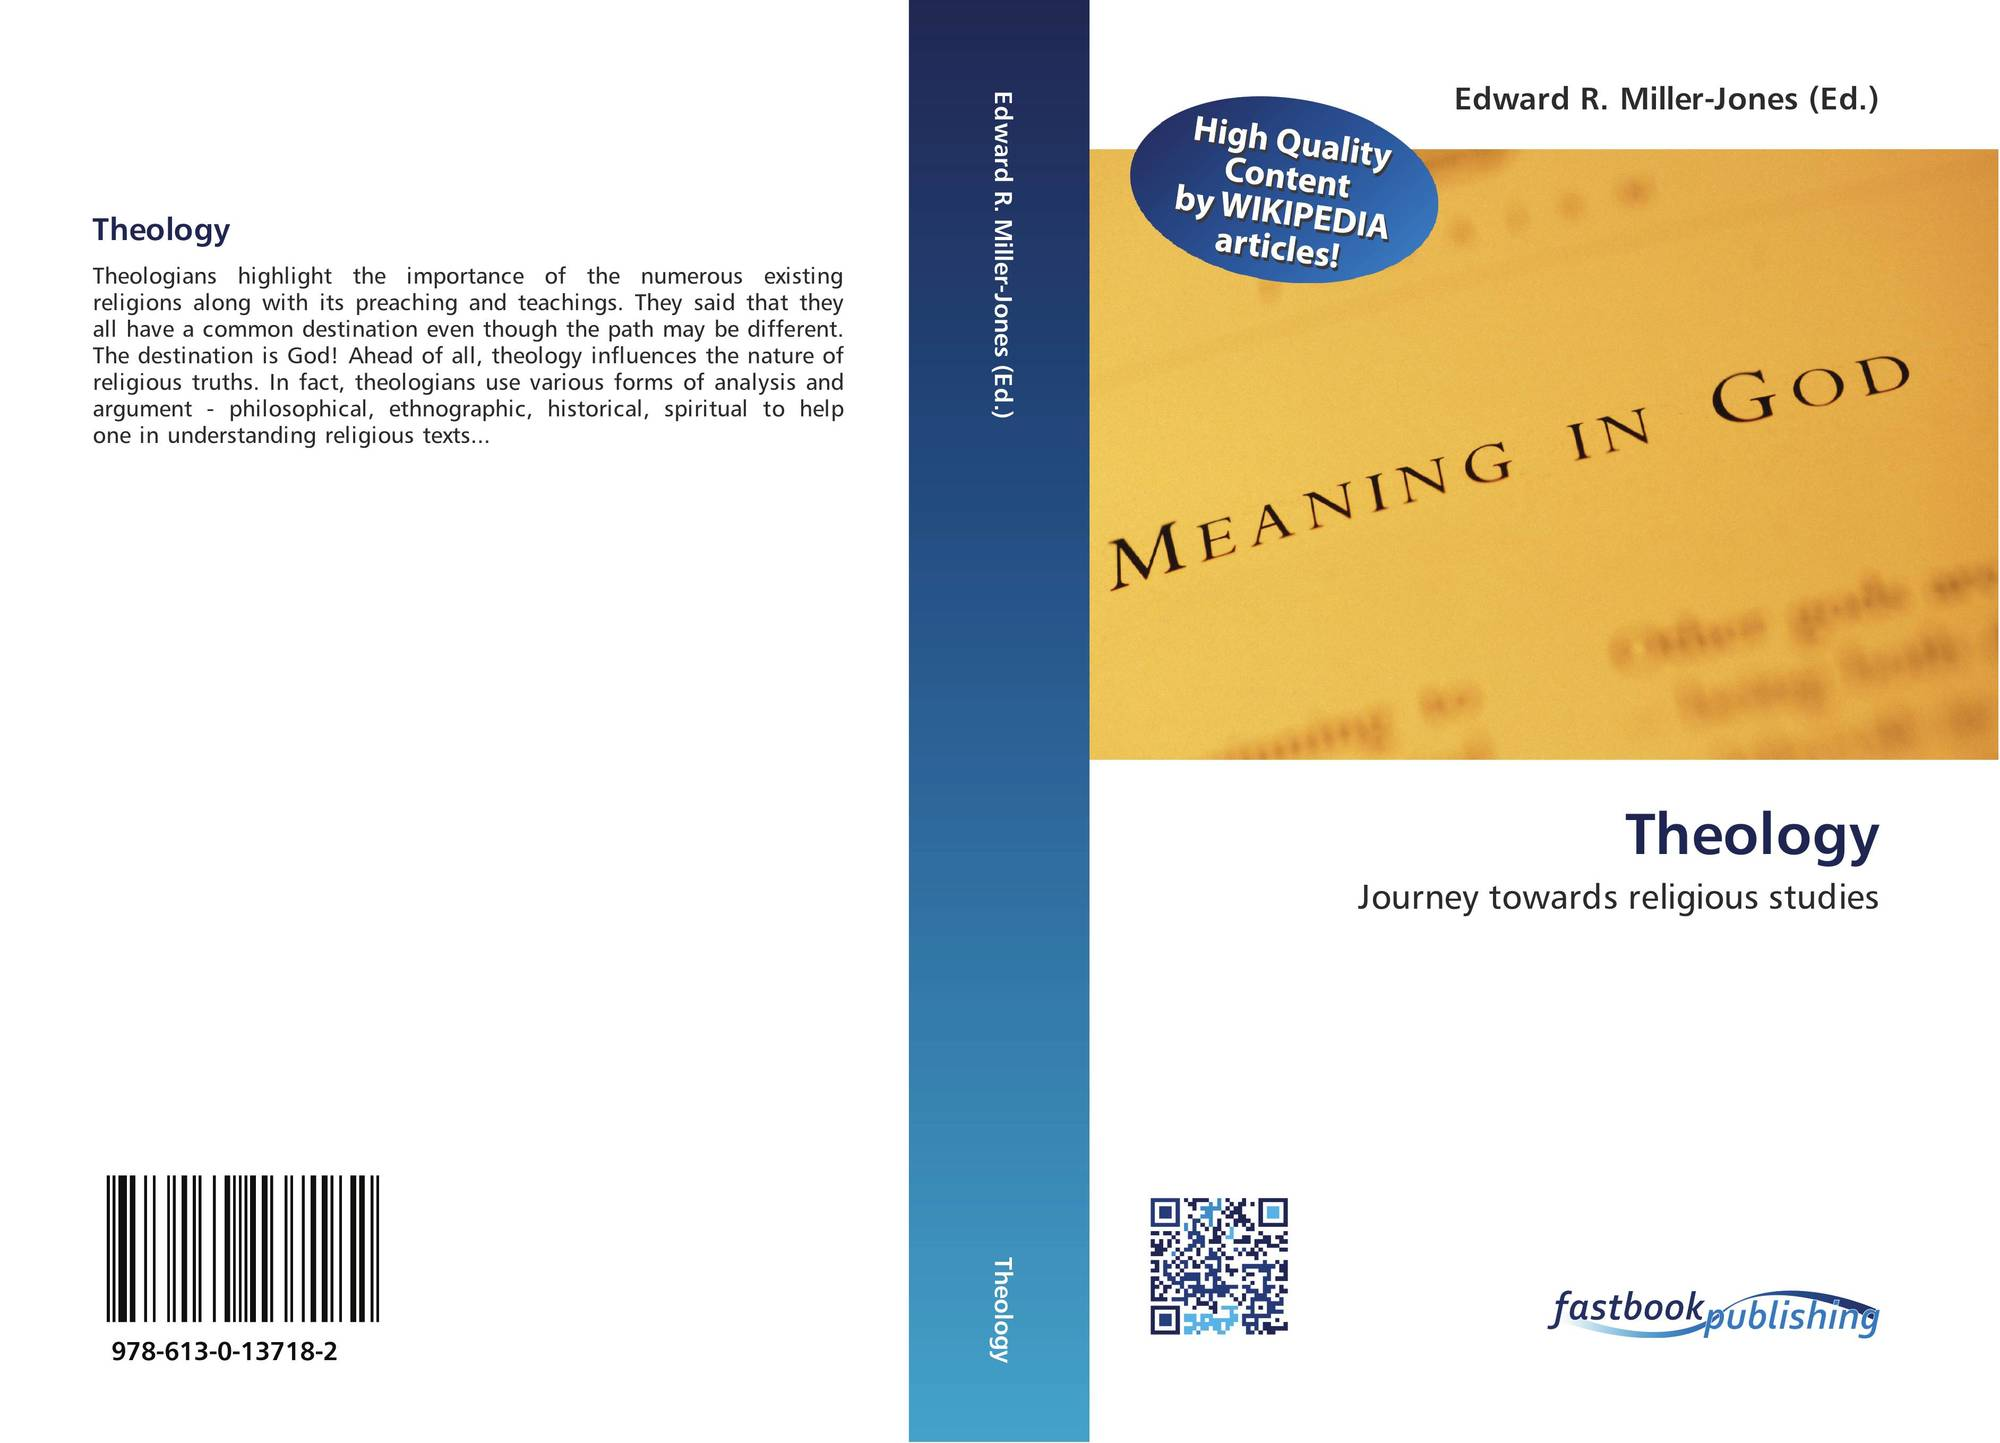 an analysis of history of the numerous religions and theologies The religion and culture academic area emphasizes analysis of the ways that religious expressions have transformed cultures and have been transformed by them.